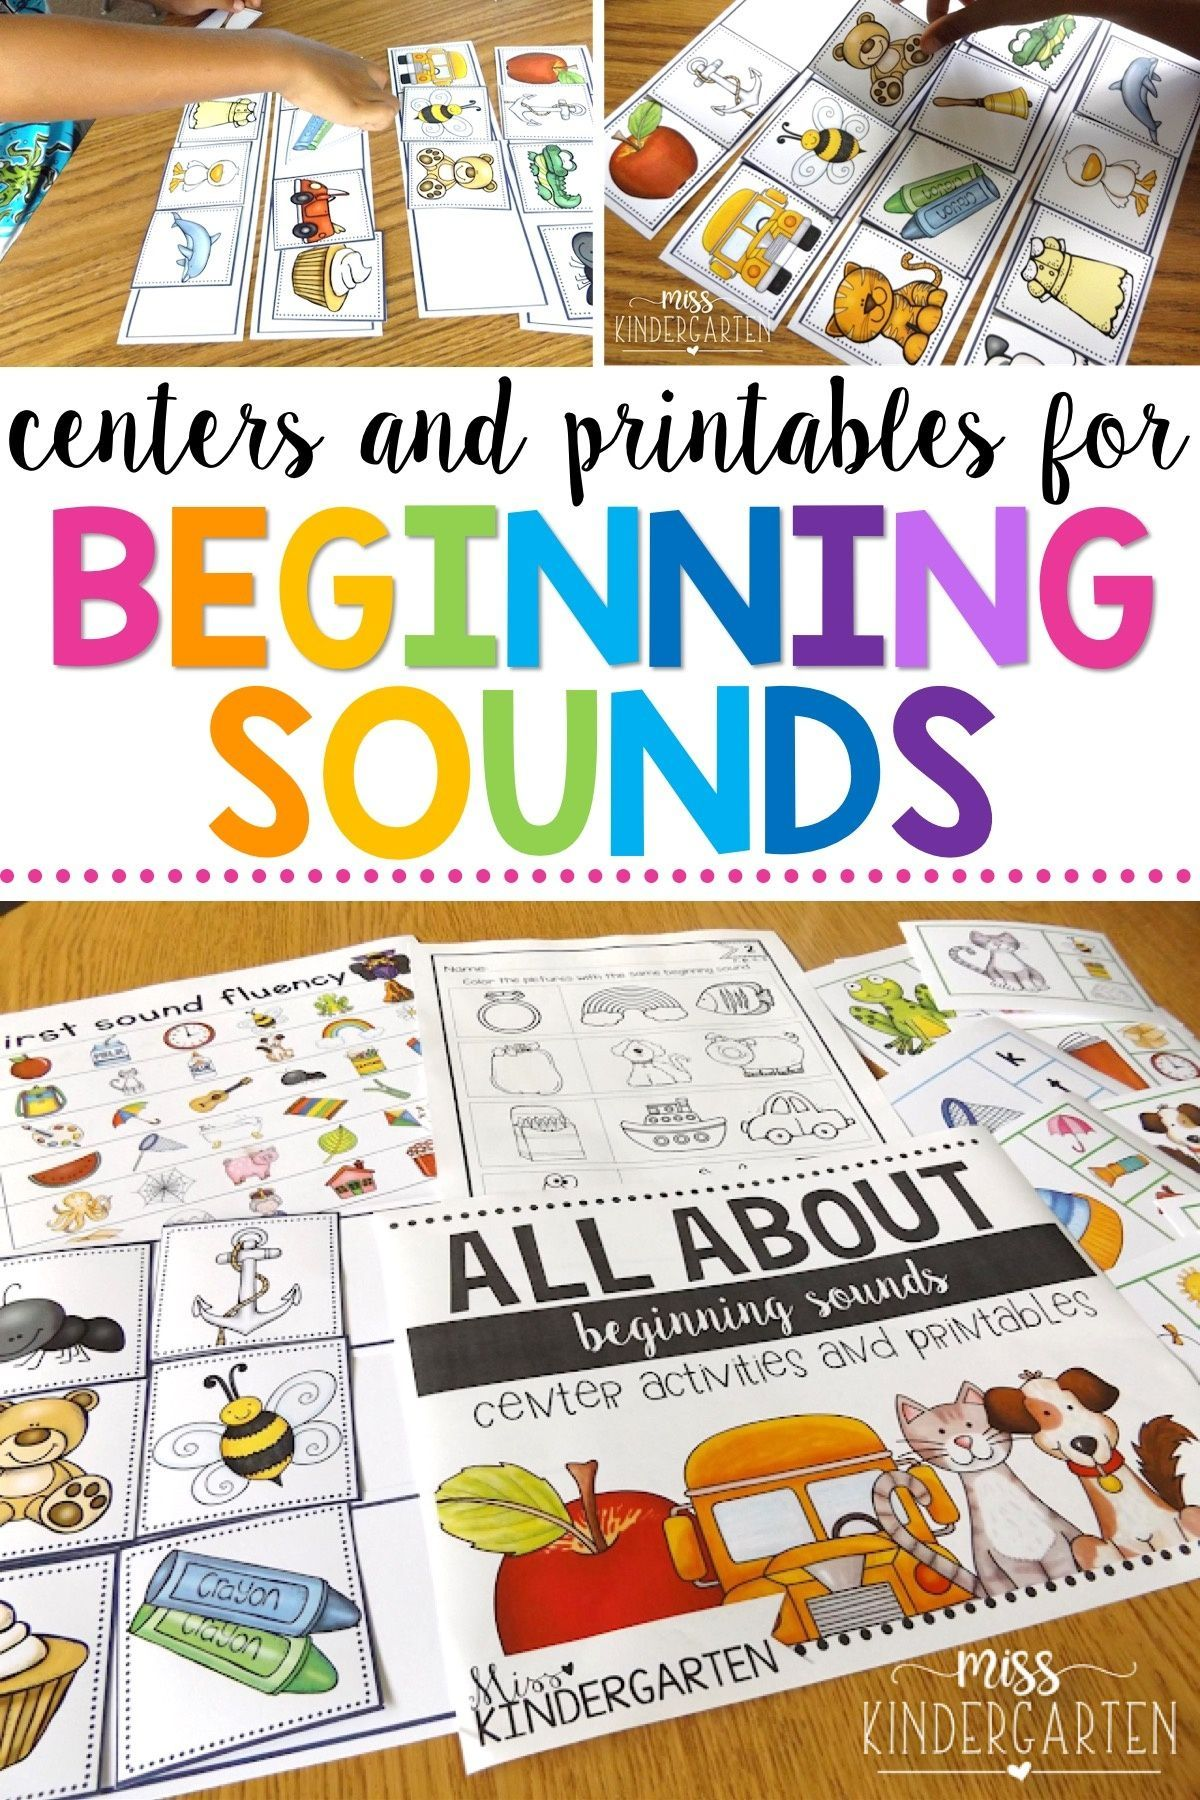 All About Beginning Sounds Center Activities And